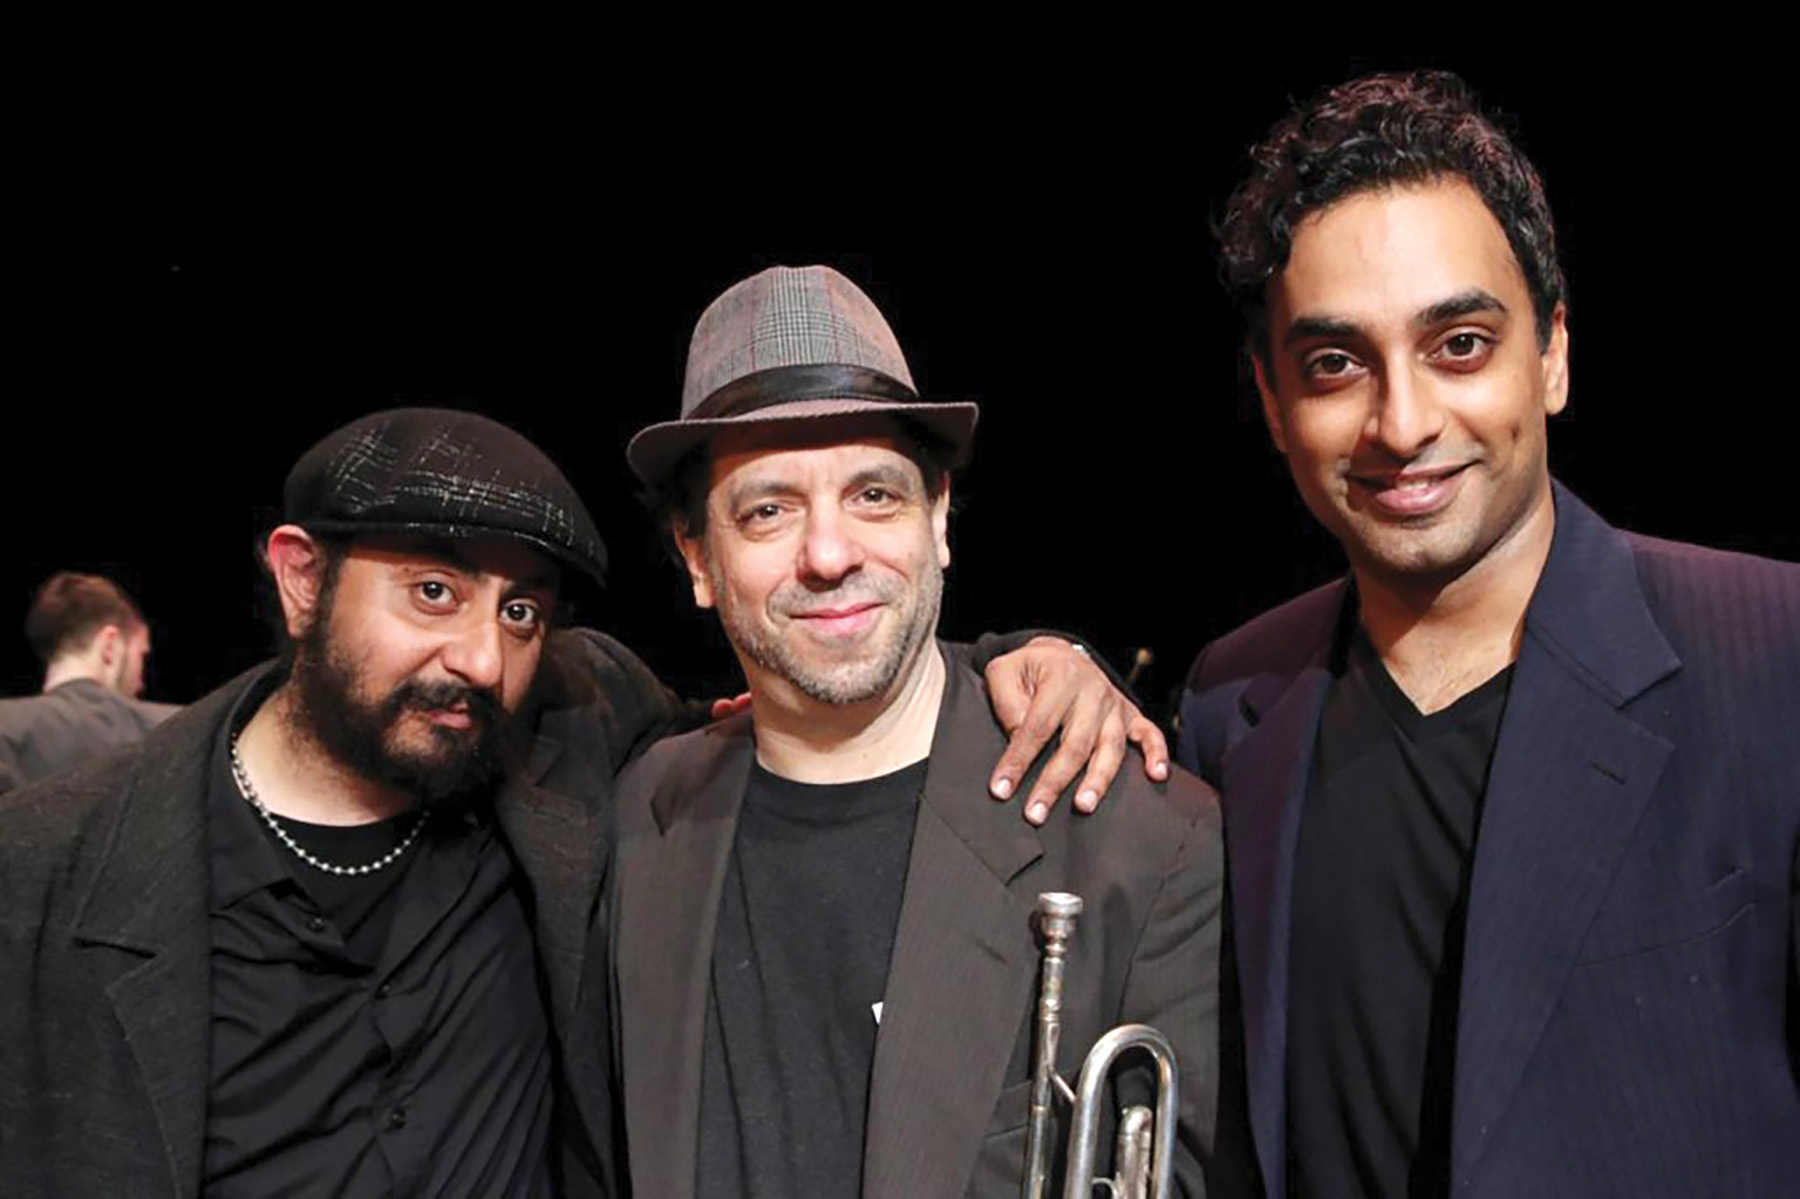 Deep Singh, Frank London and Manu Narayan of the Indian-klez group Sharabi. Lia Chang